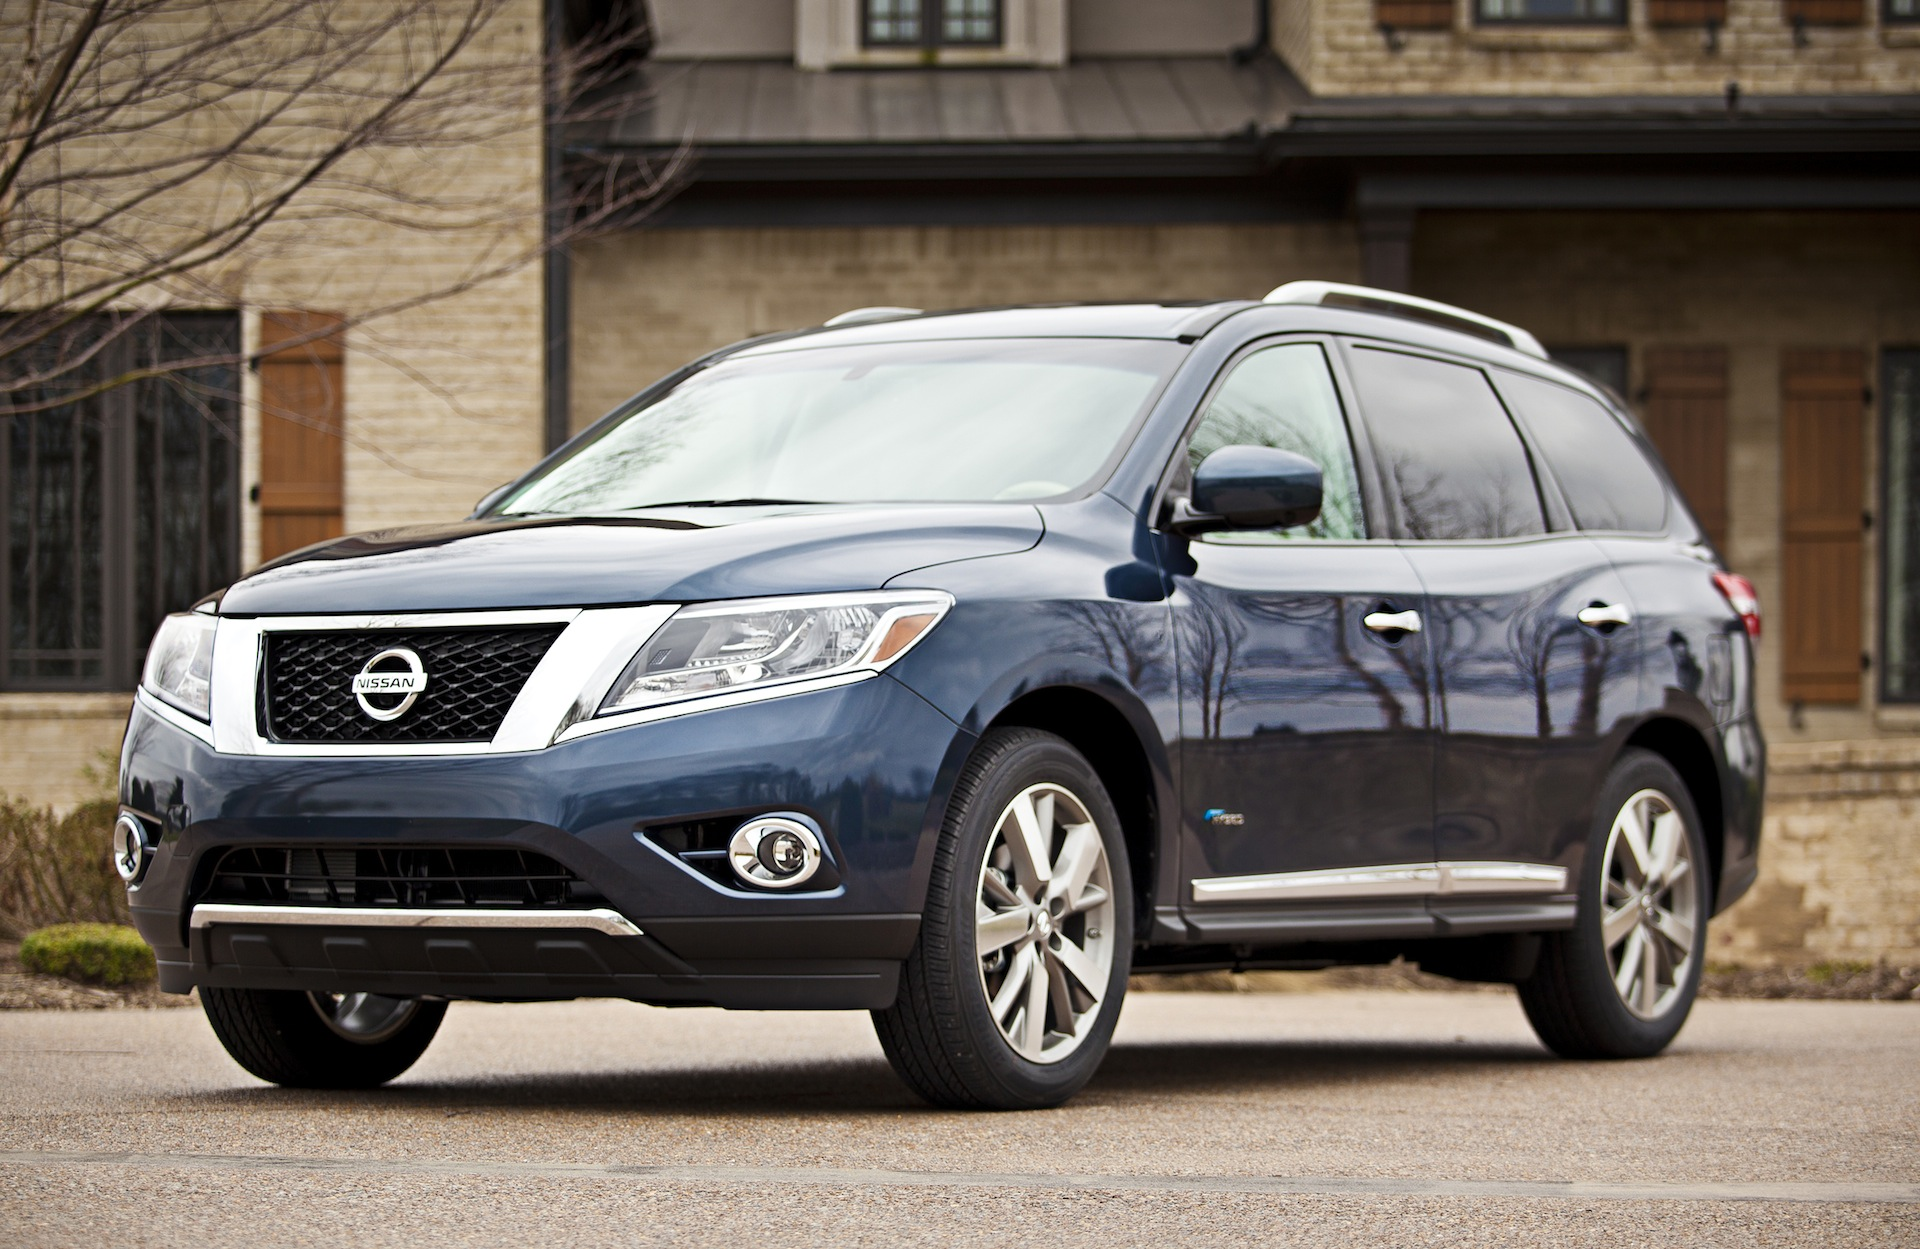 2014 Nissan Pathfinder Hybrid: Full Details From NY Auto Show